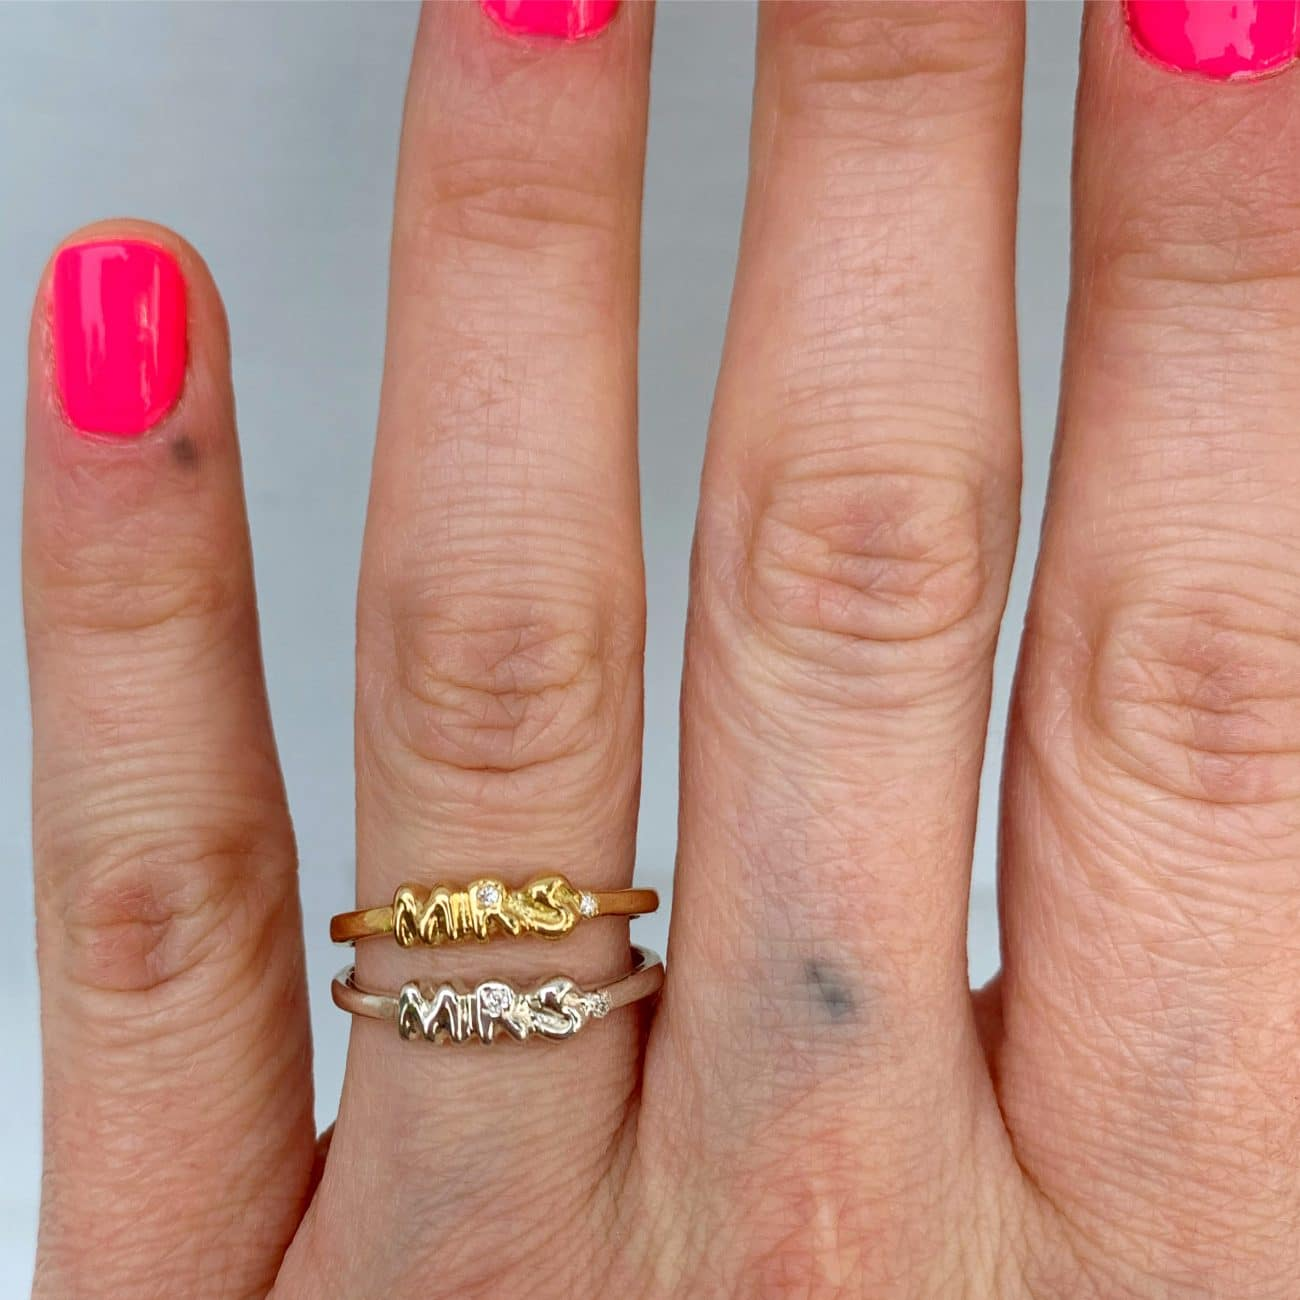 wearing the mrs ring with diamond in 14k gold